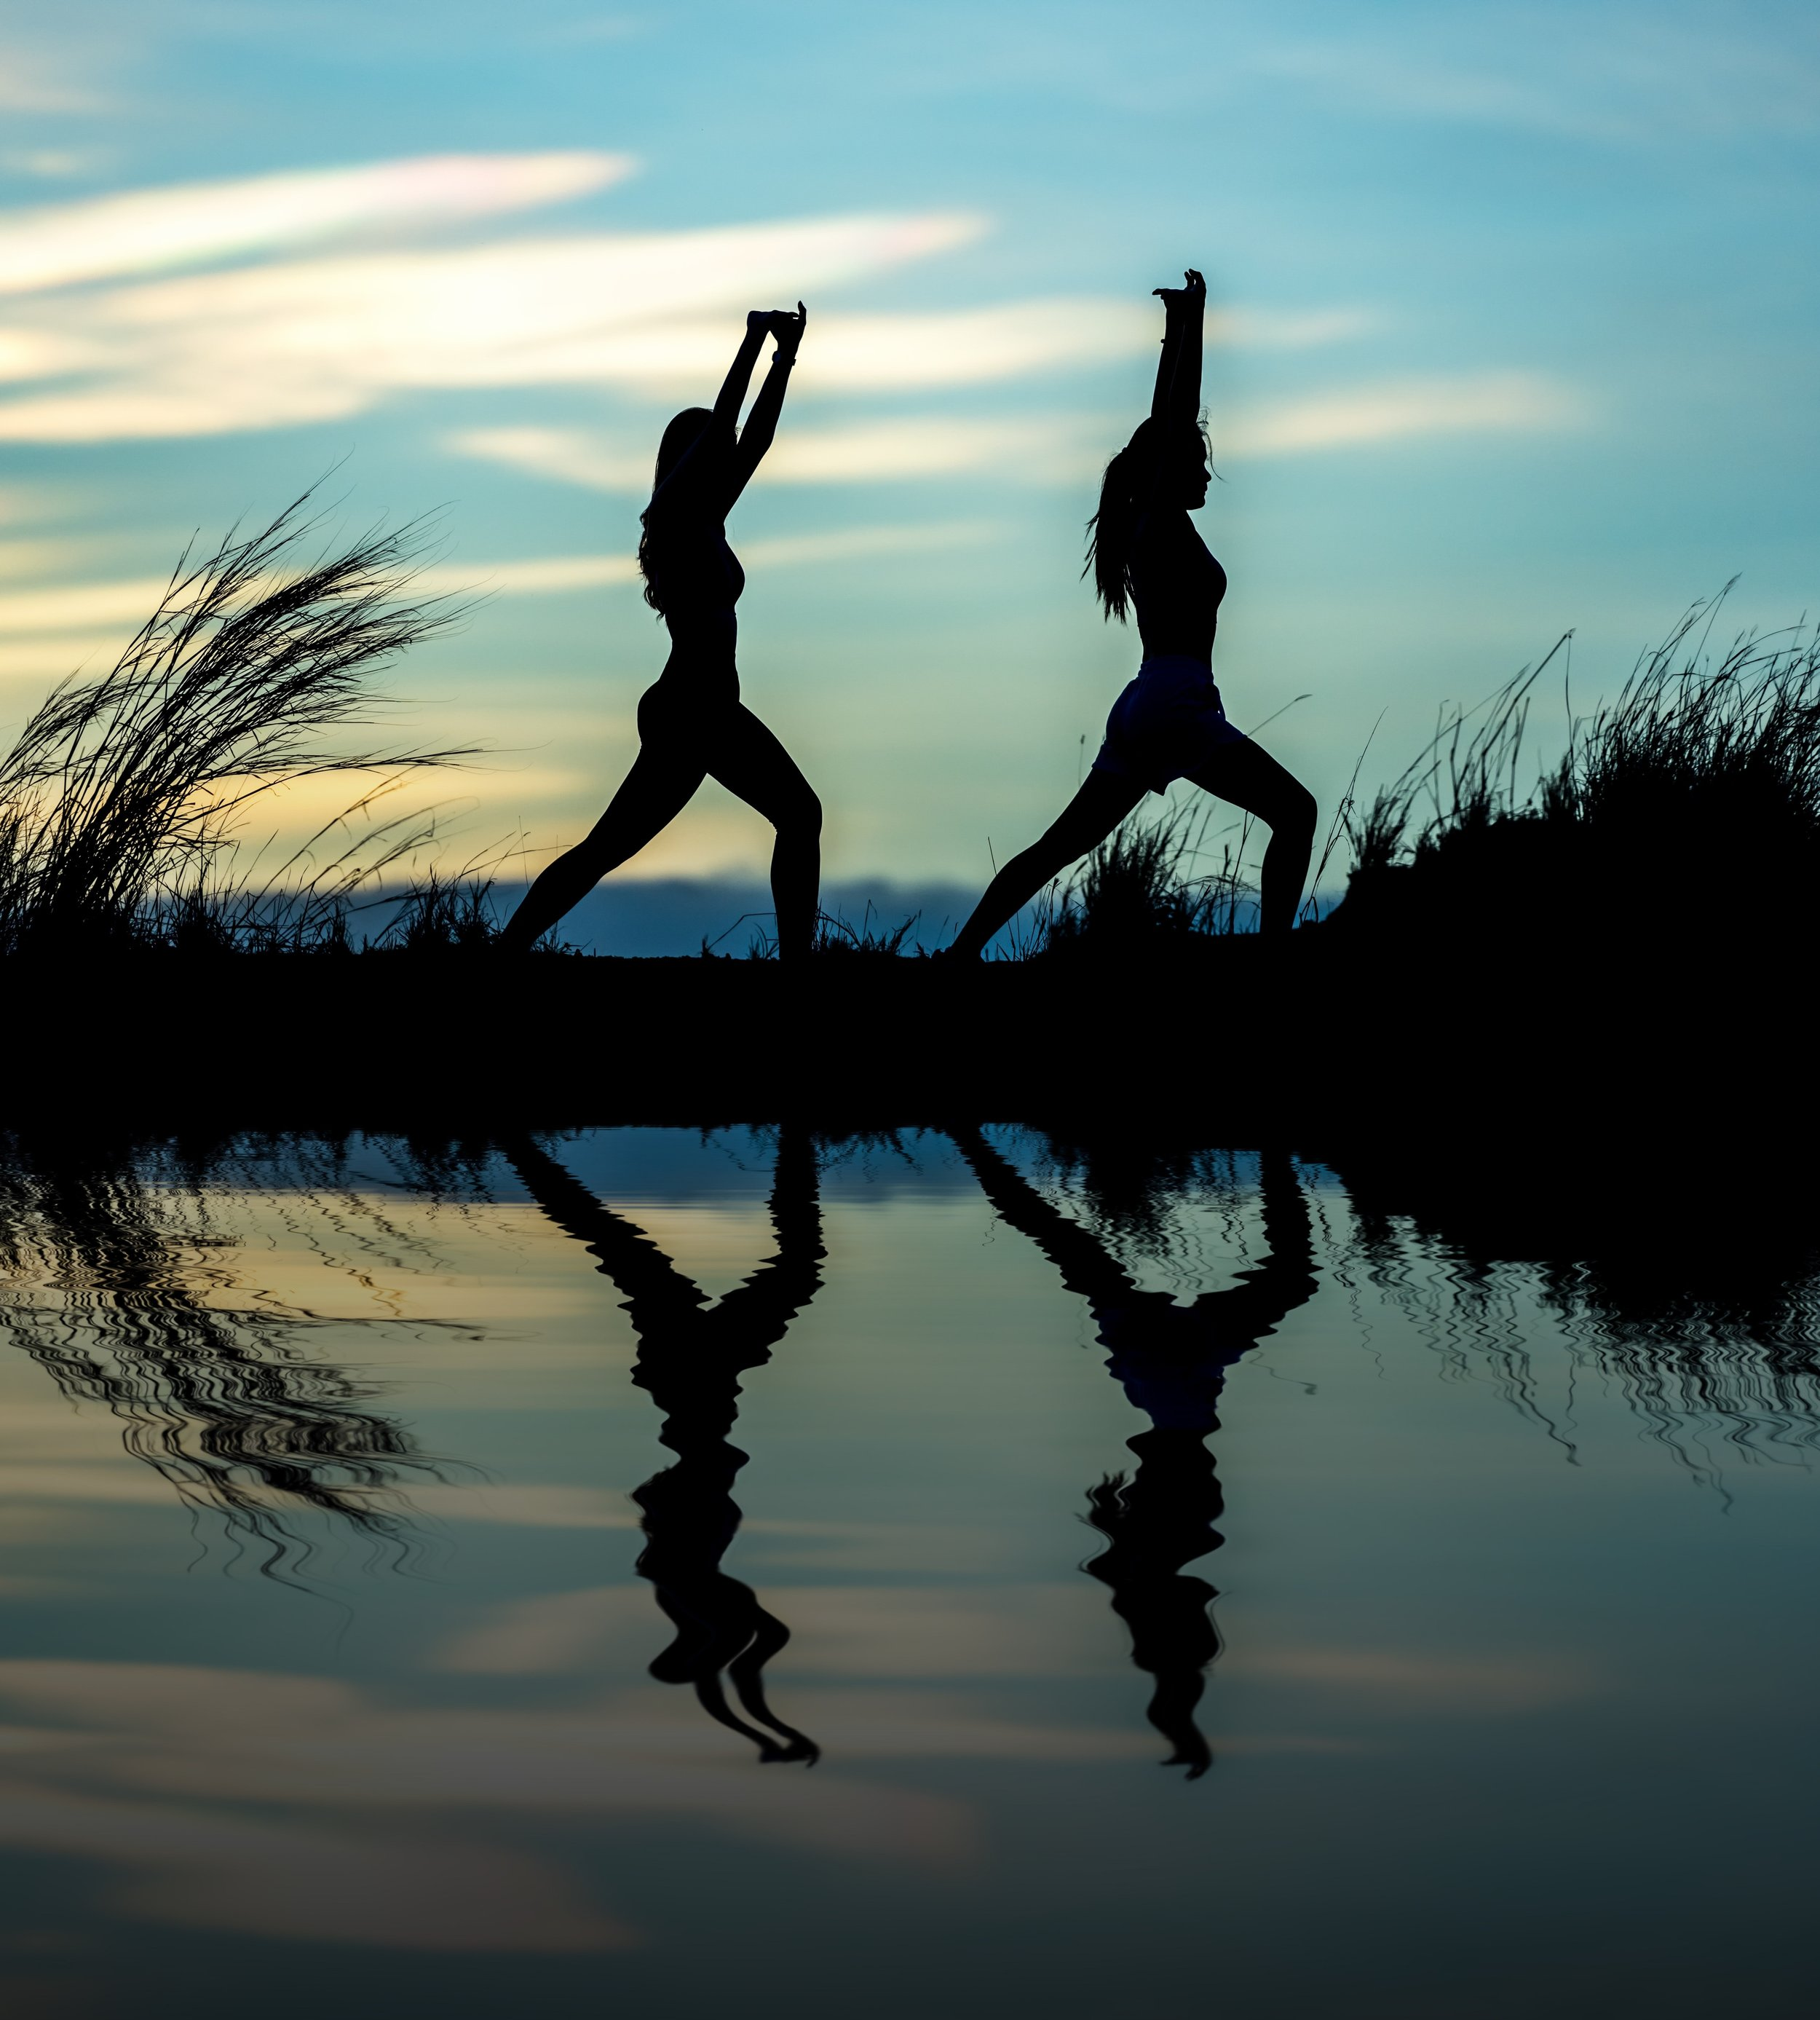 Mindful Movement Image, Two People Doing Yoga Stretches By a Lake